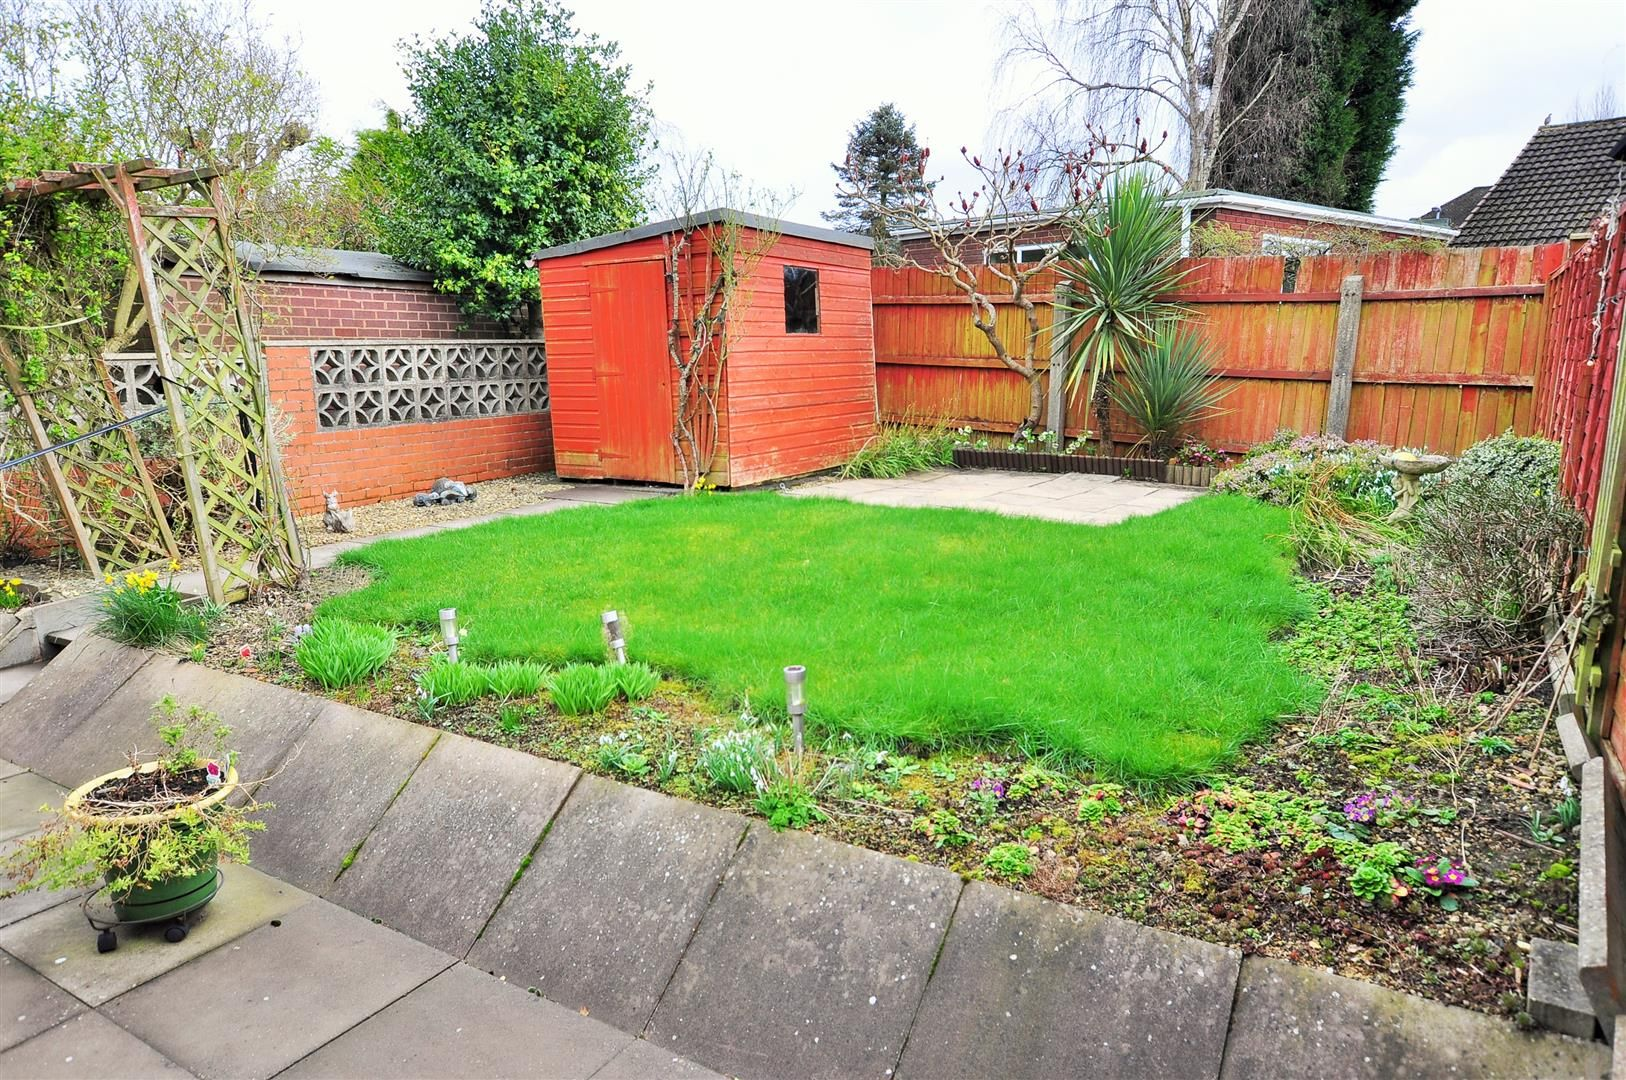 2 bed detached-bungalow for sale in Hurst Green 10